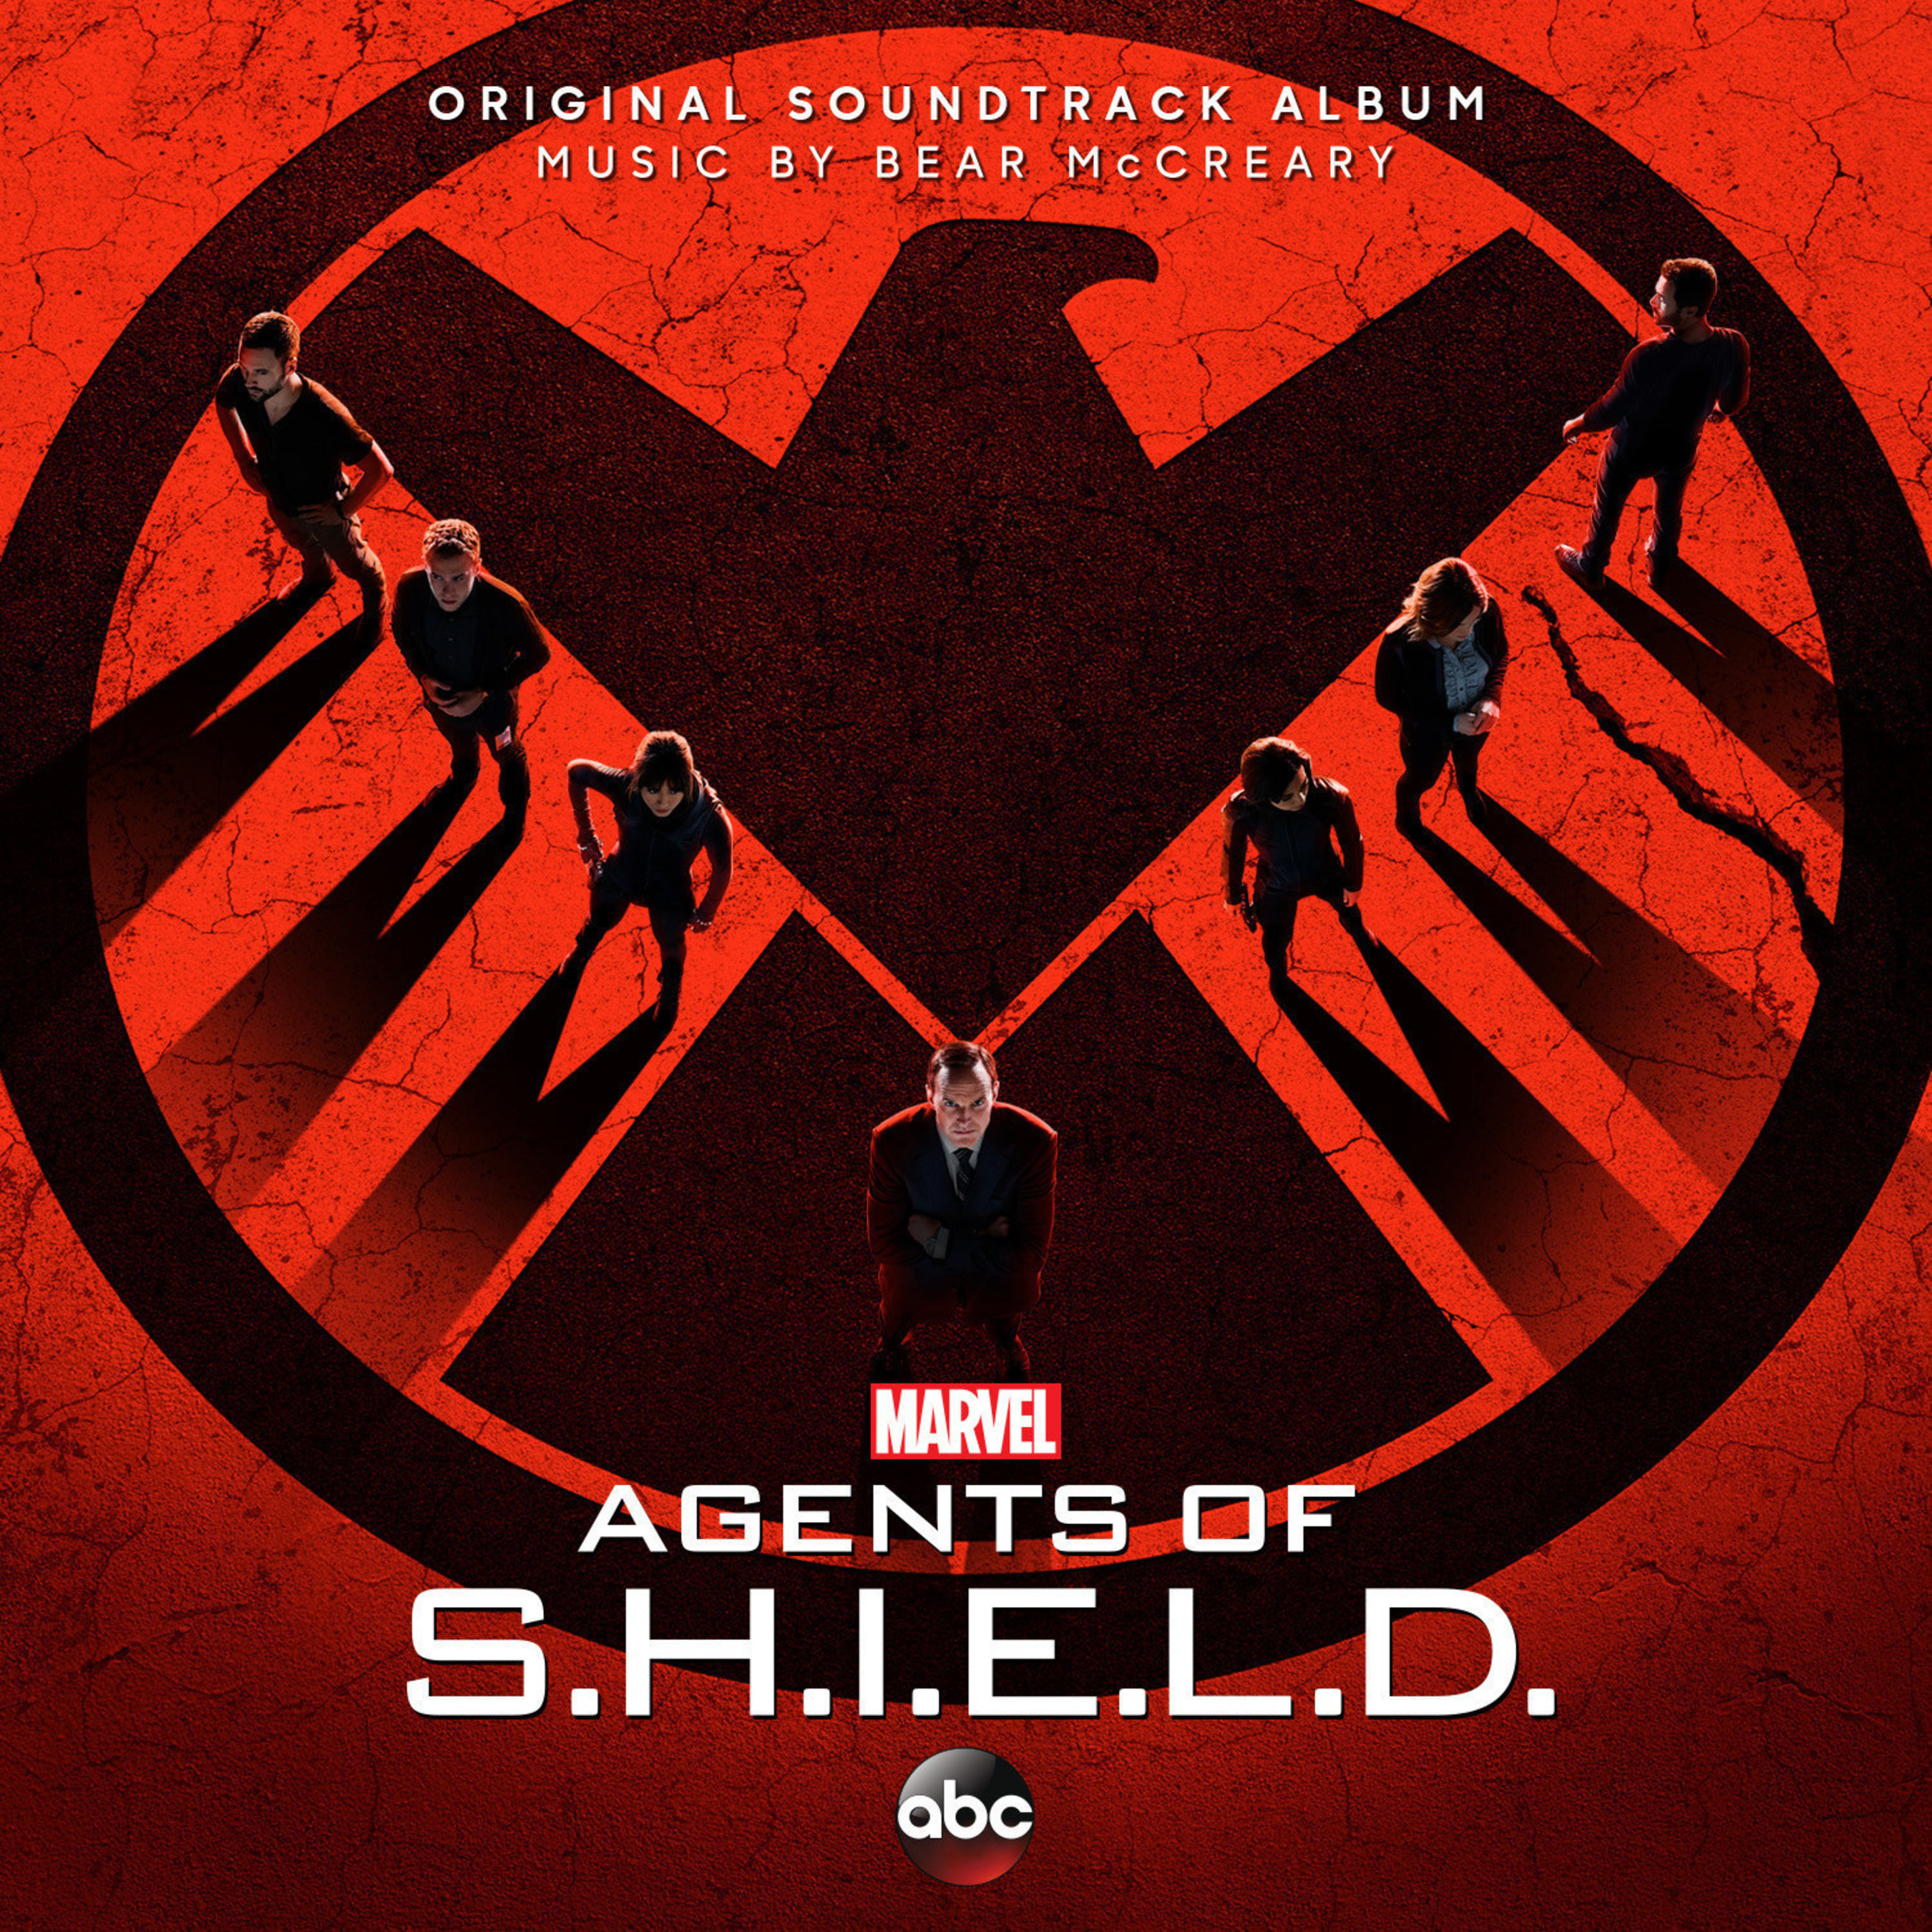 Marvel Music To Release Marvel's Agents Of S.H.I.E.L.D. Soundtrack